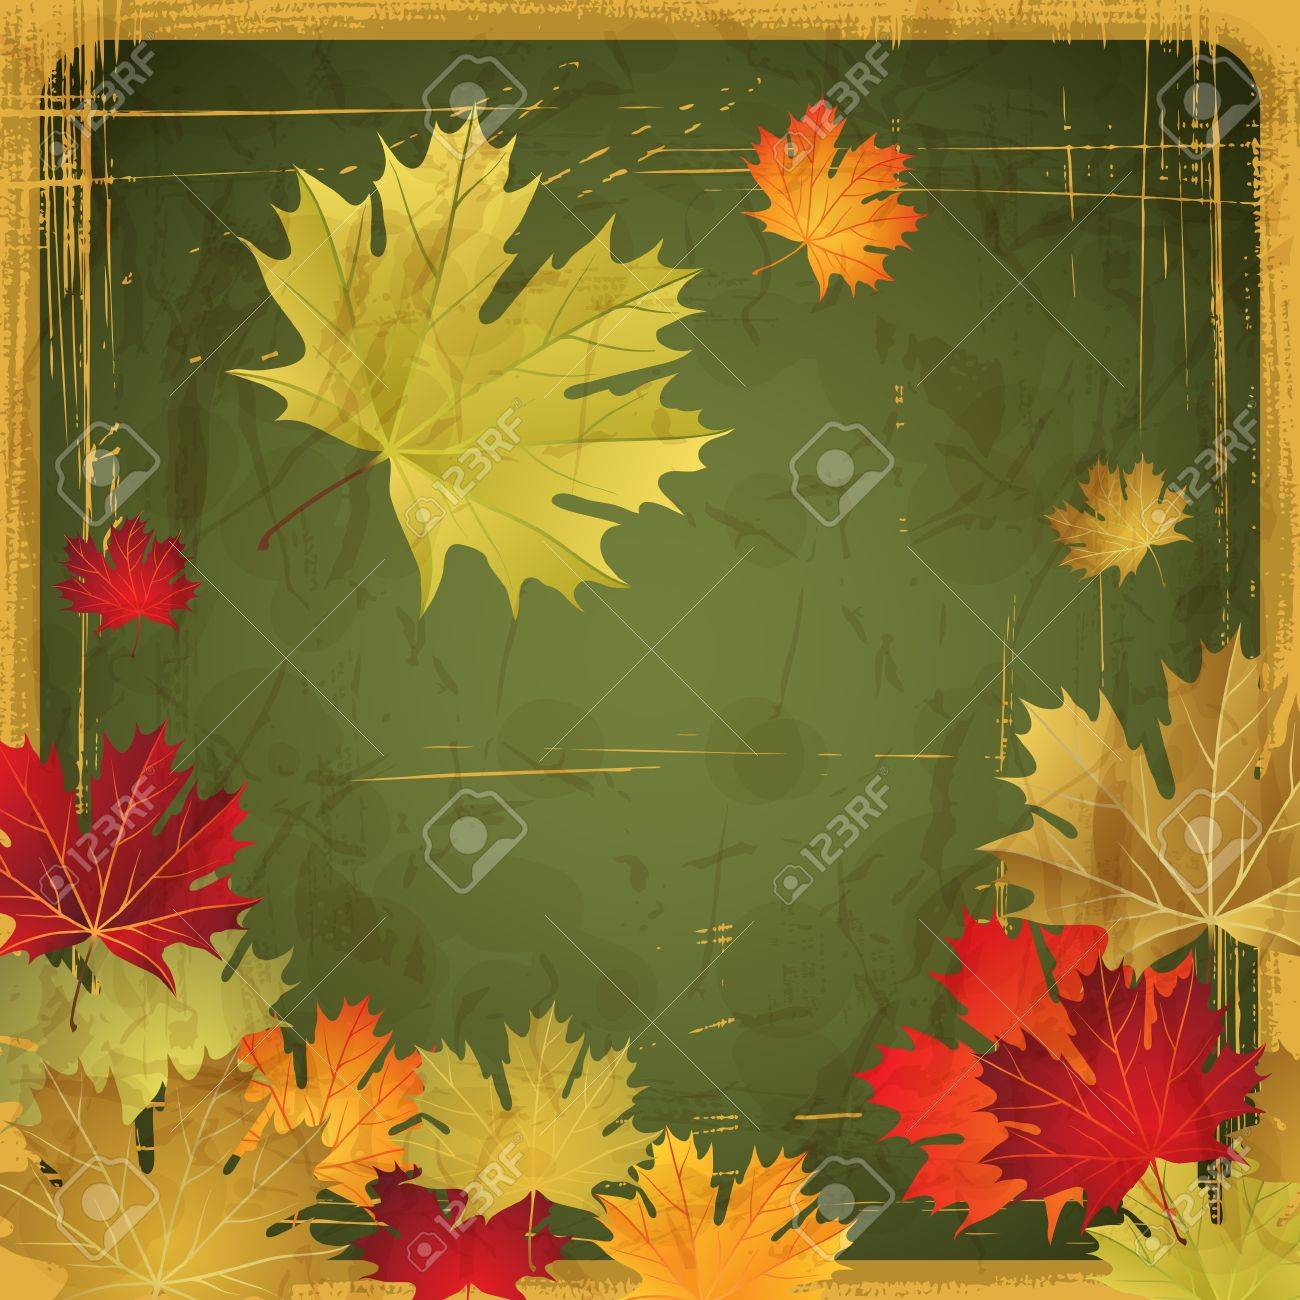 Autumn leaves grunge background Stock Vector - 14751486